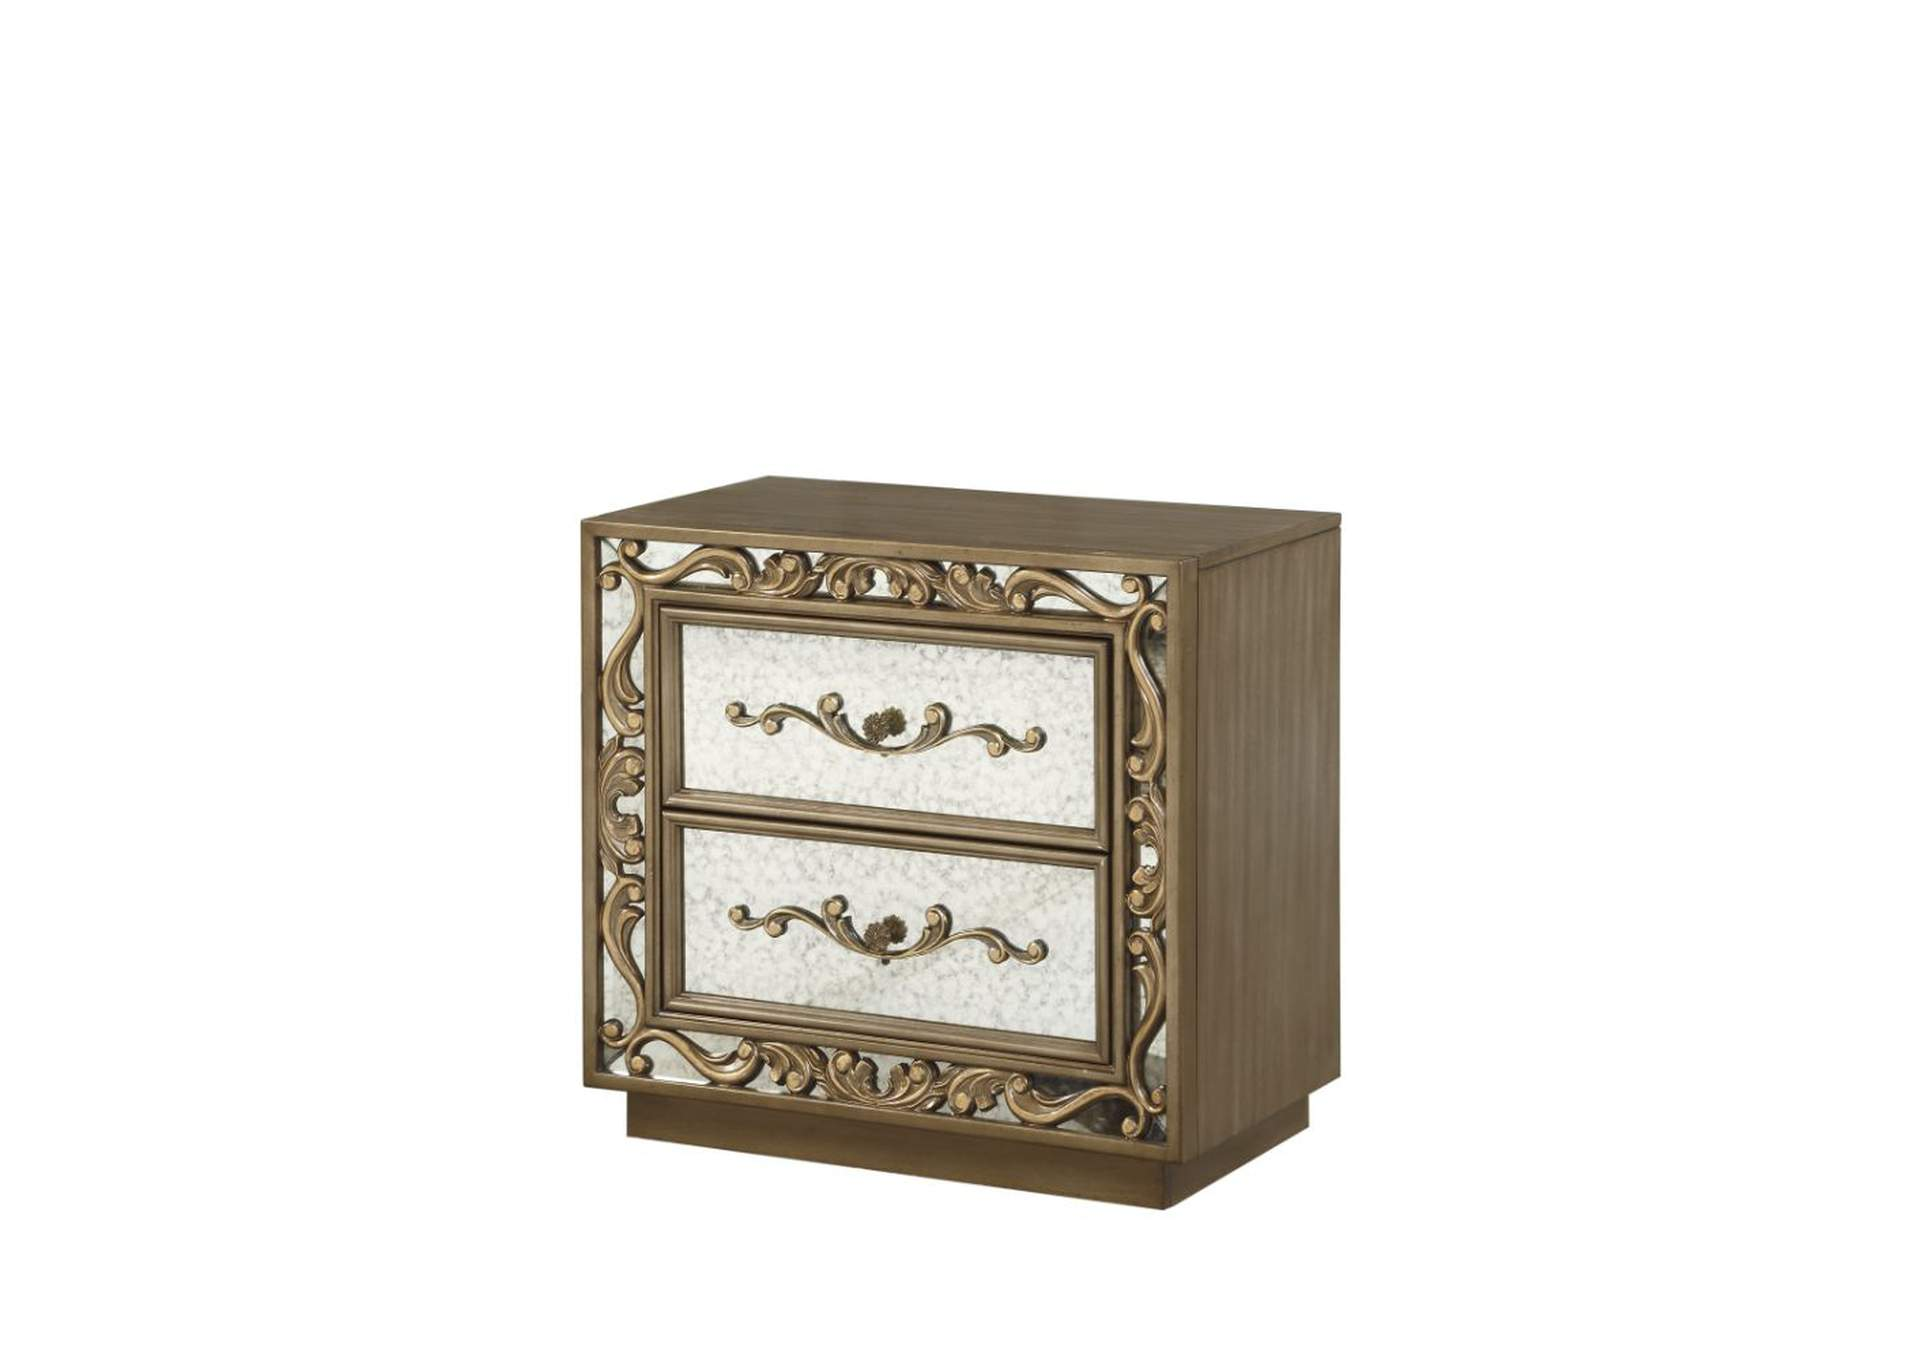 Orianne Antique Gold Nightstand,Acme